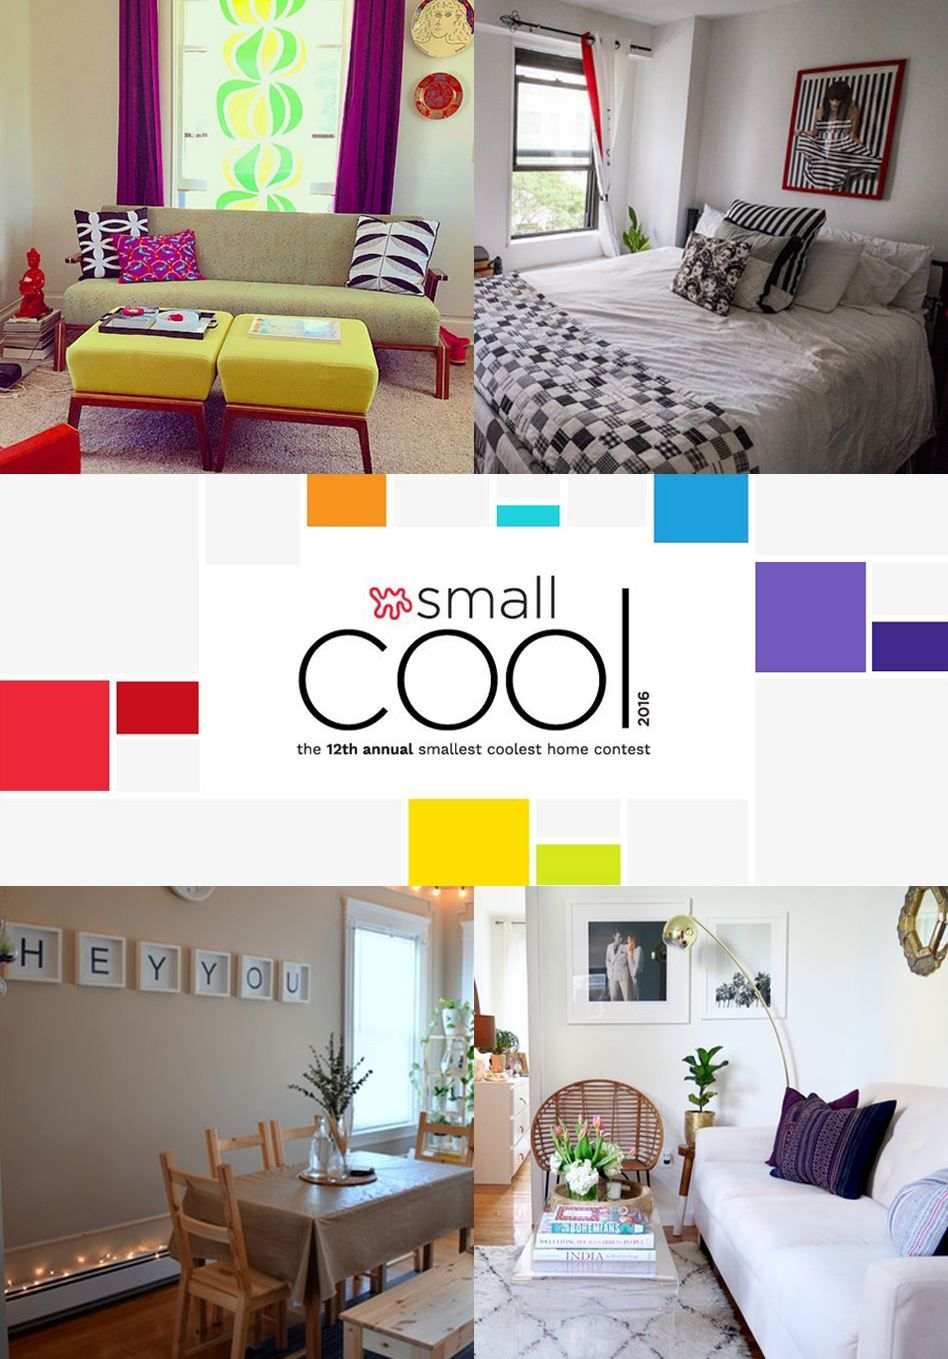 Small Living Room Apartment Therapy: Style Lessons From Today's Small Cool Entries (Vote For